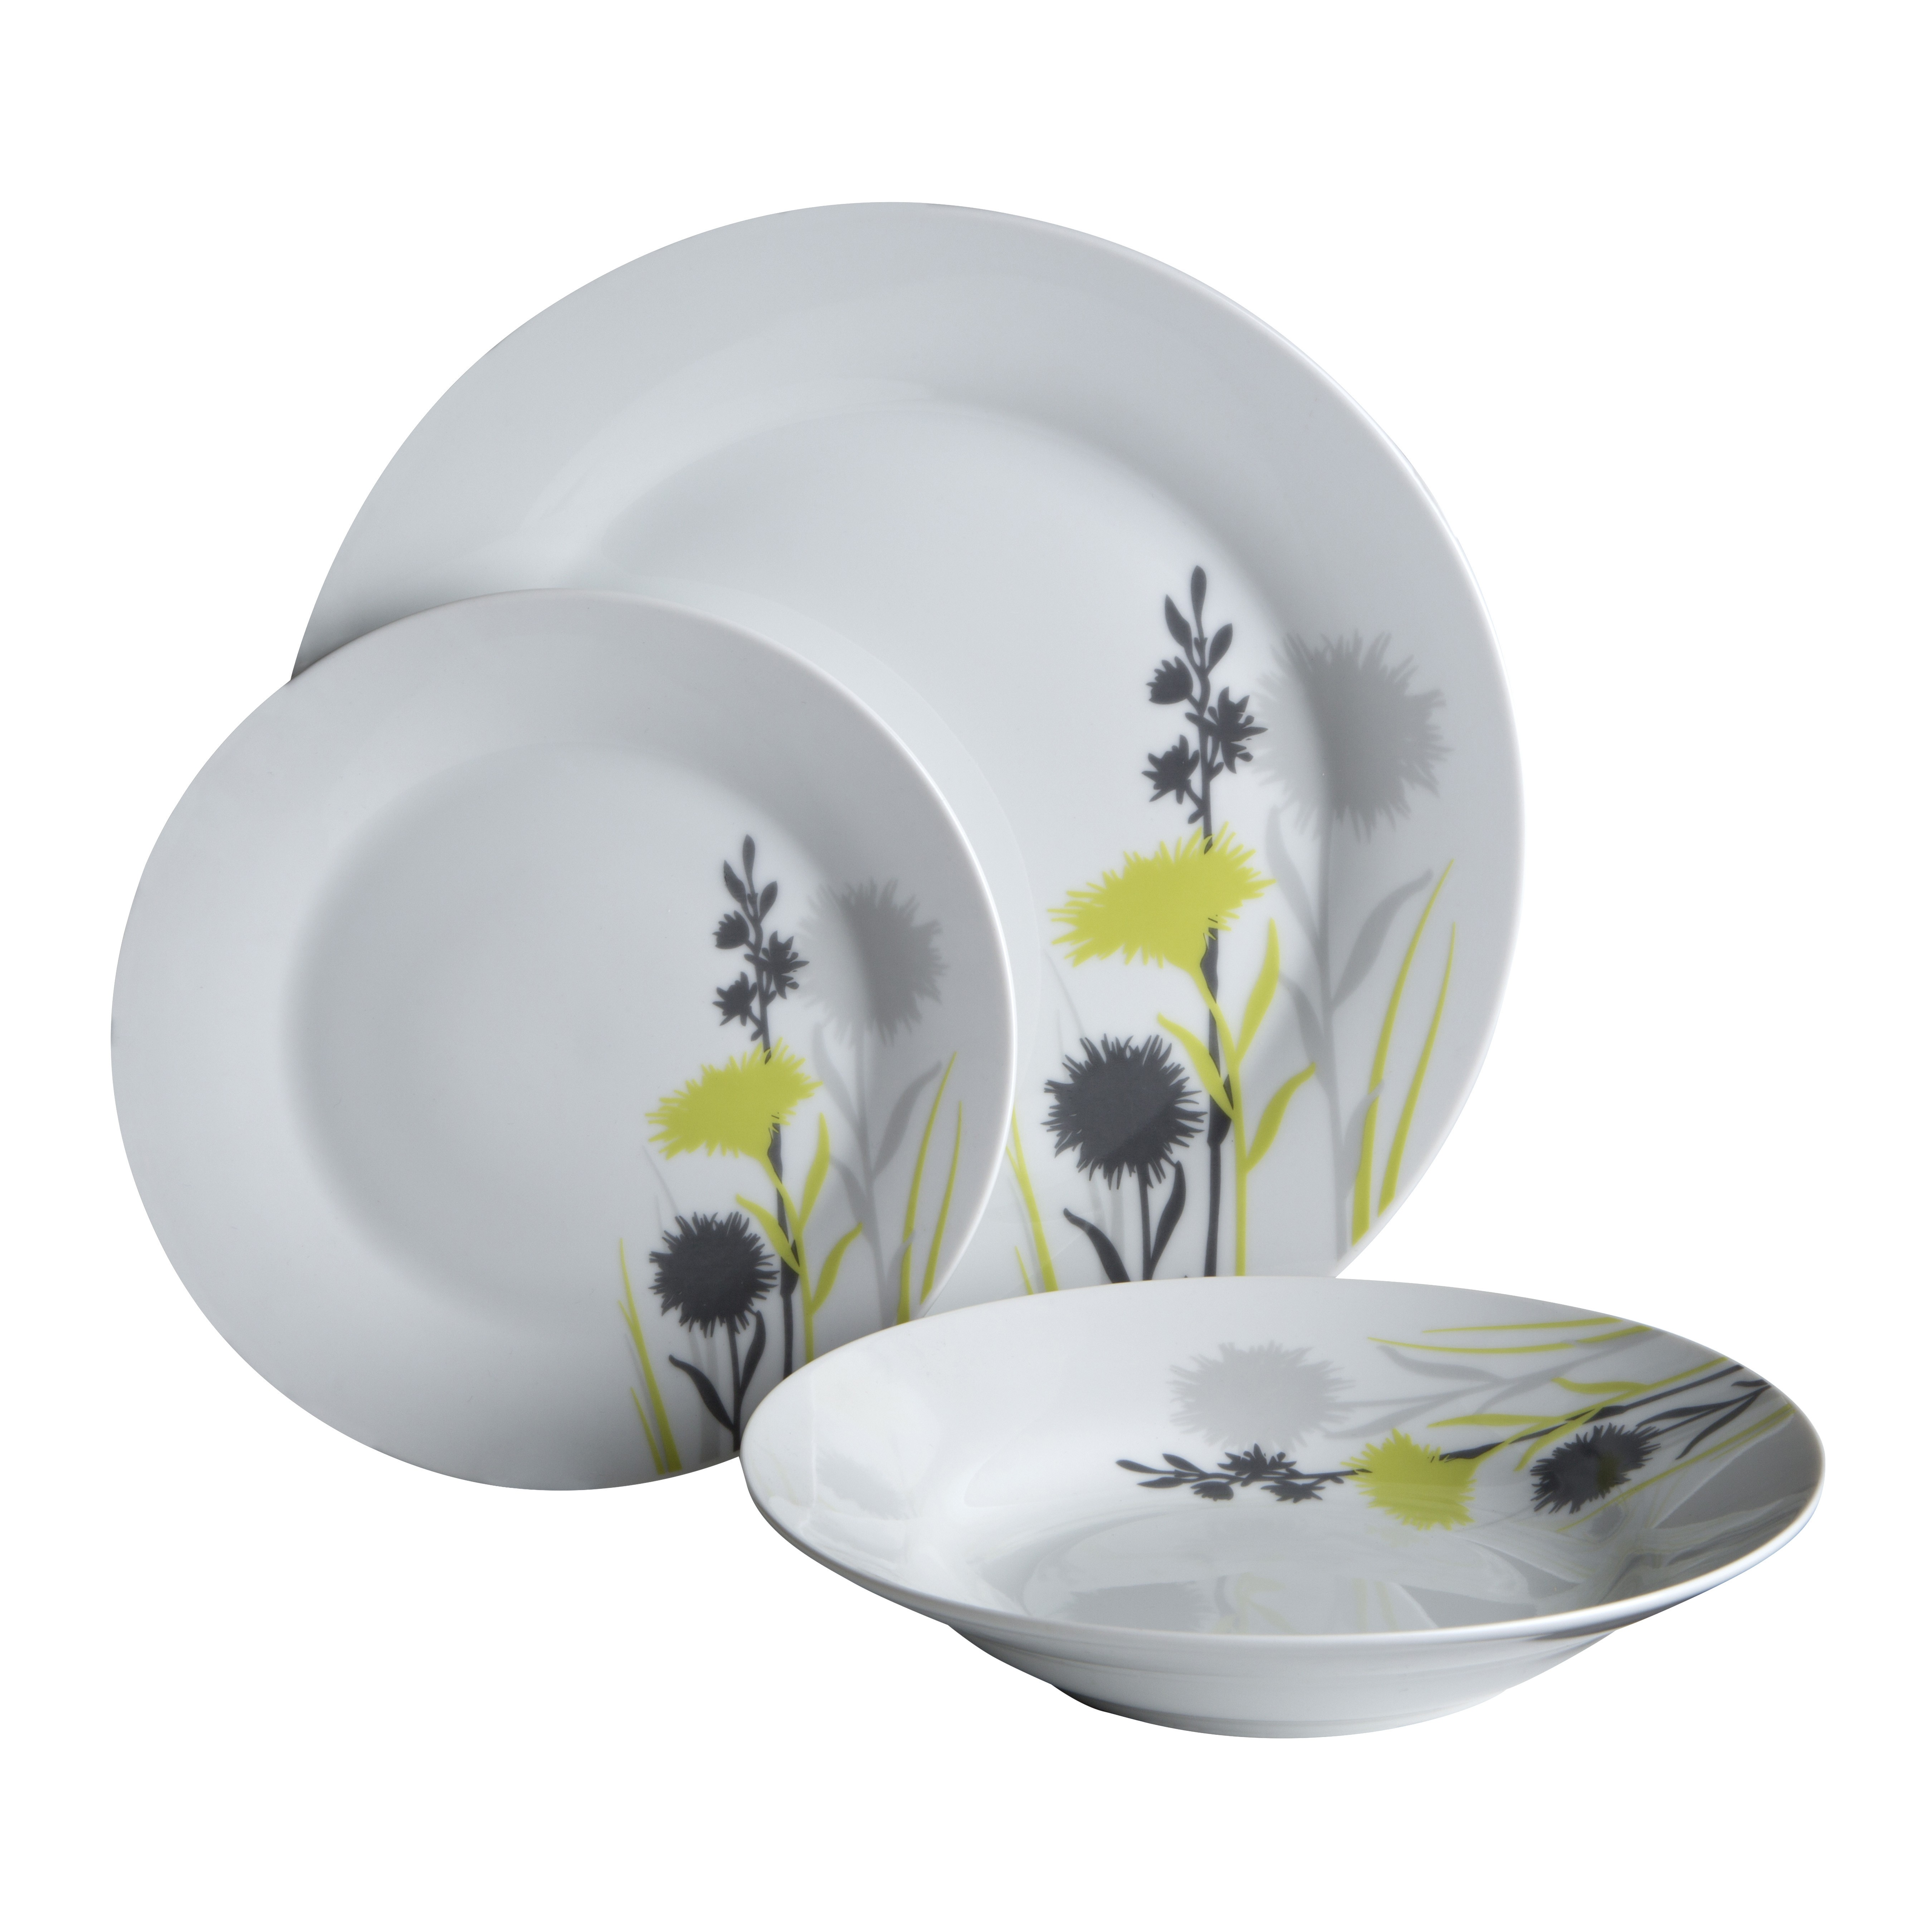 Prime Furnishing 24pc Meadow Dinner Set Porcelain